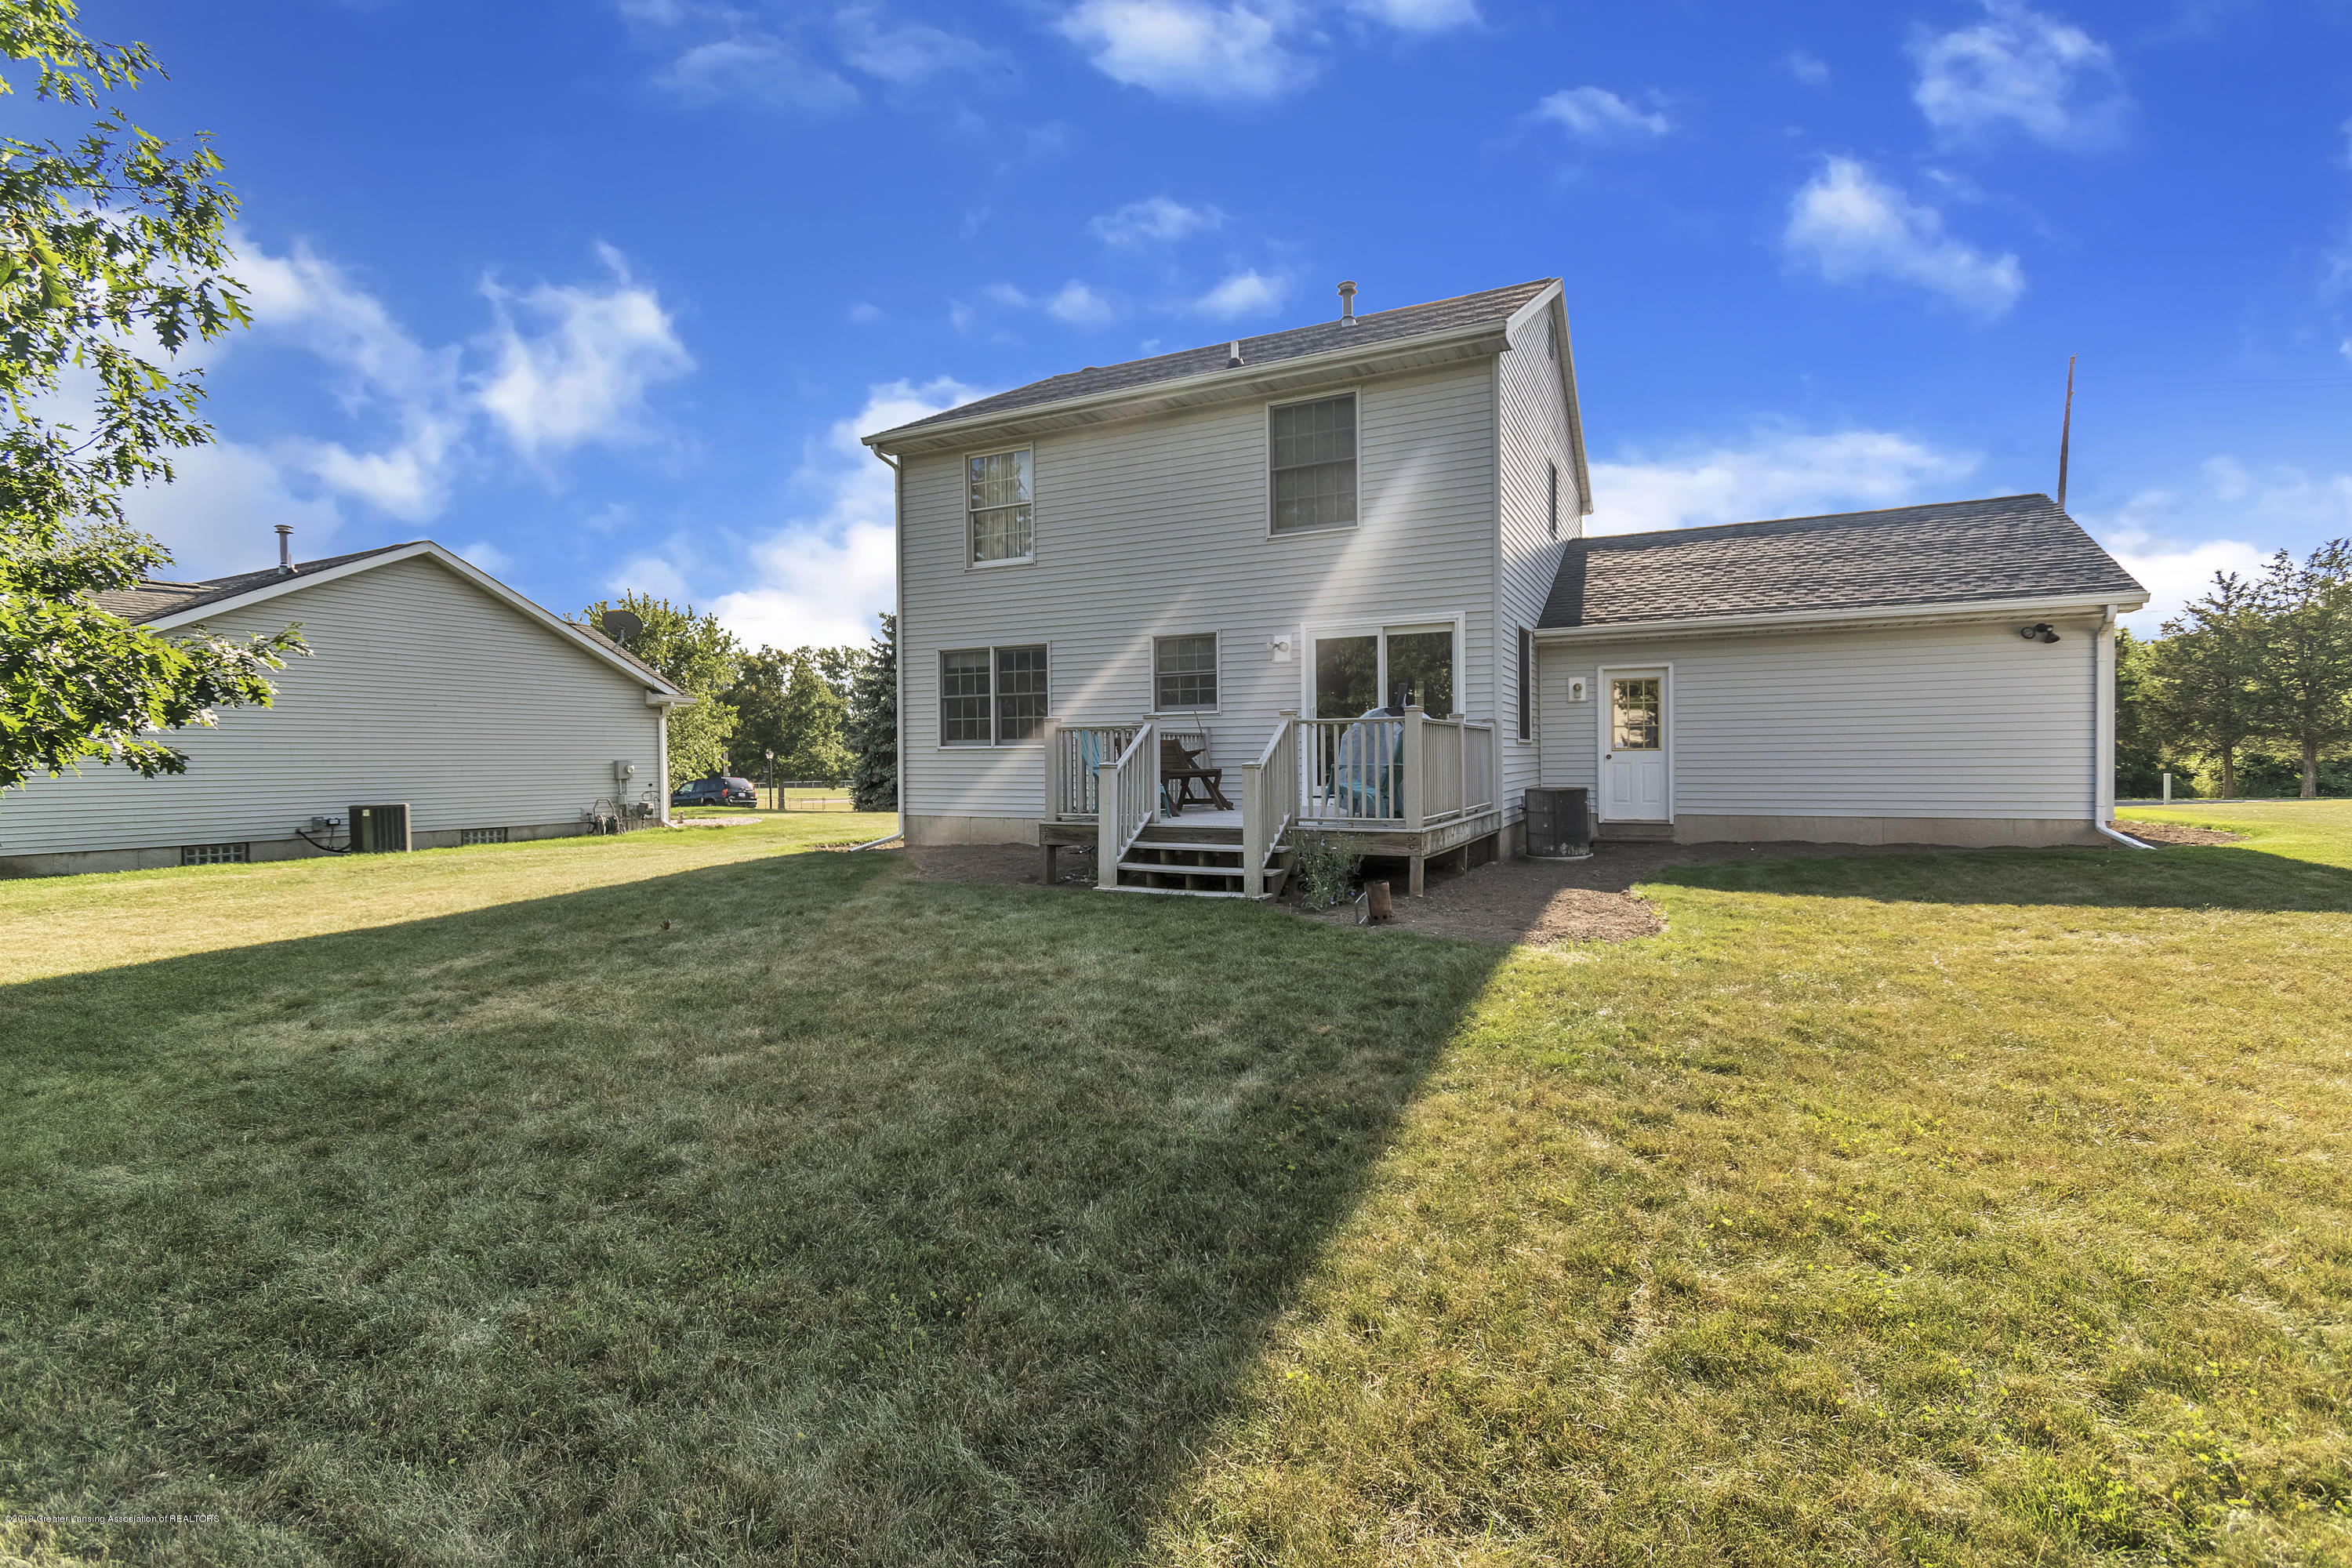 2350 Pine Tree Rd - 2350-Pine-Tree-Rd-Holt-MI-windowstill-39 - 34